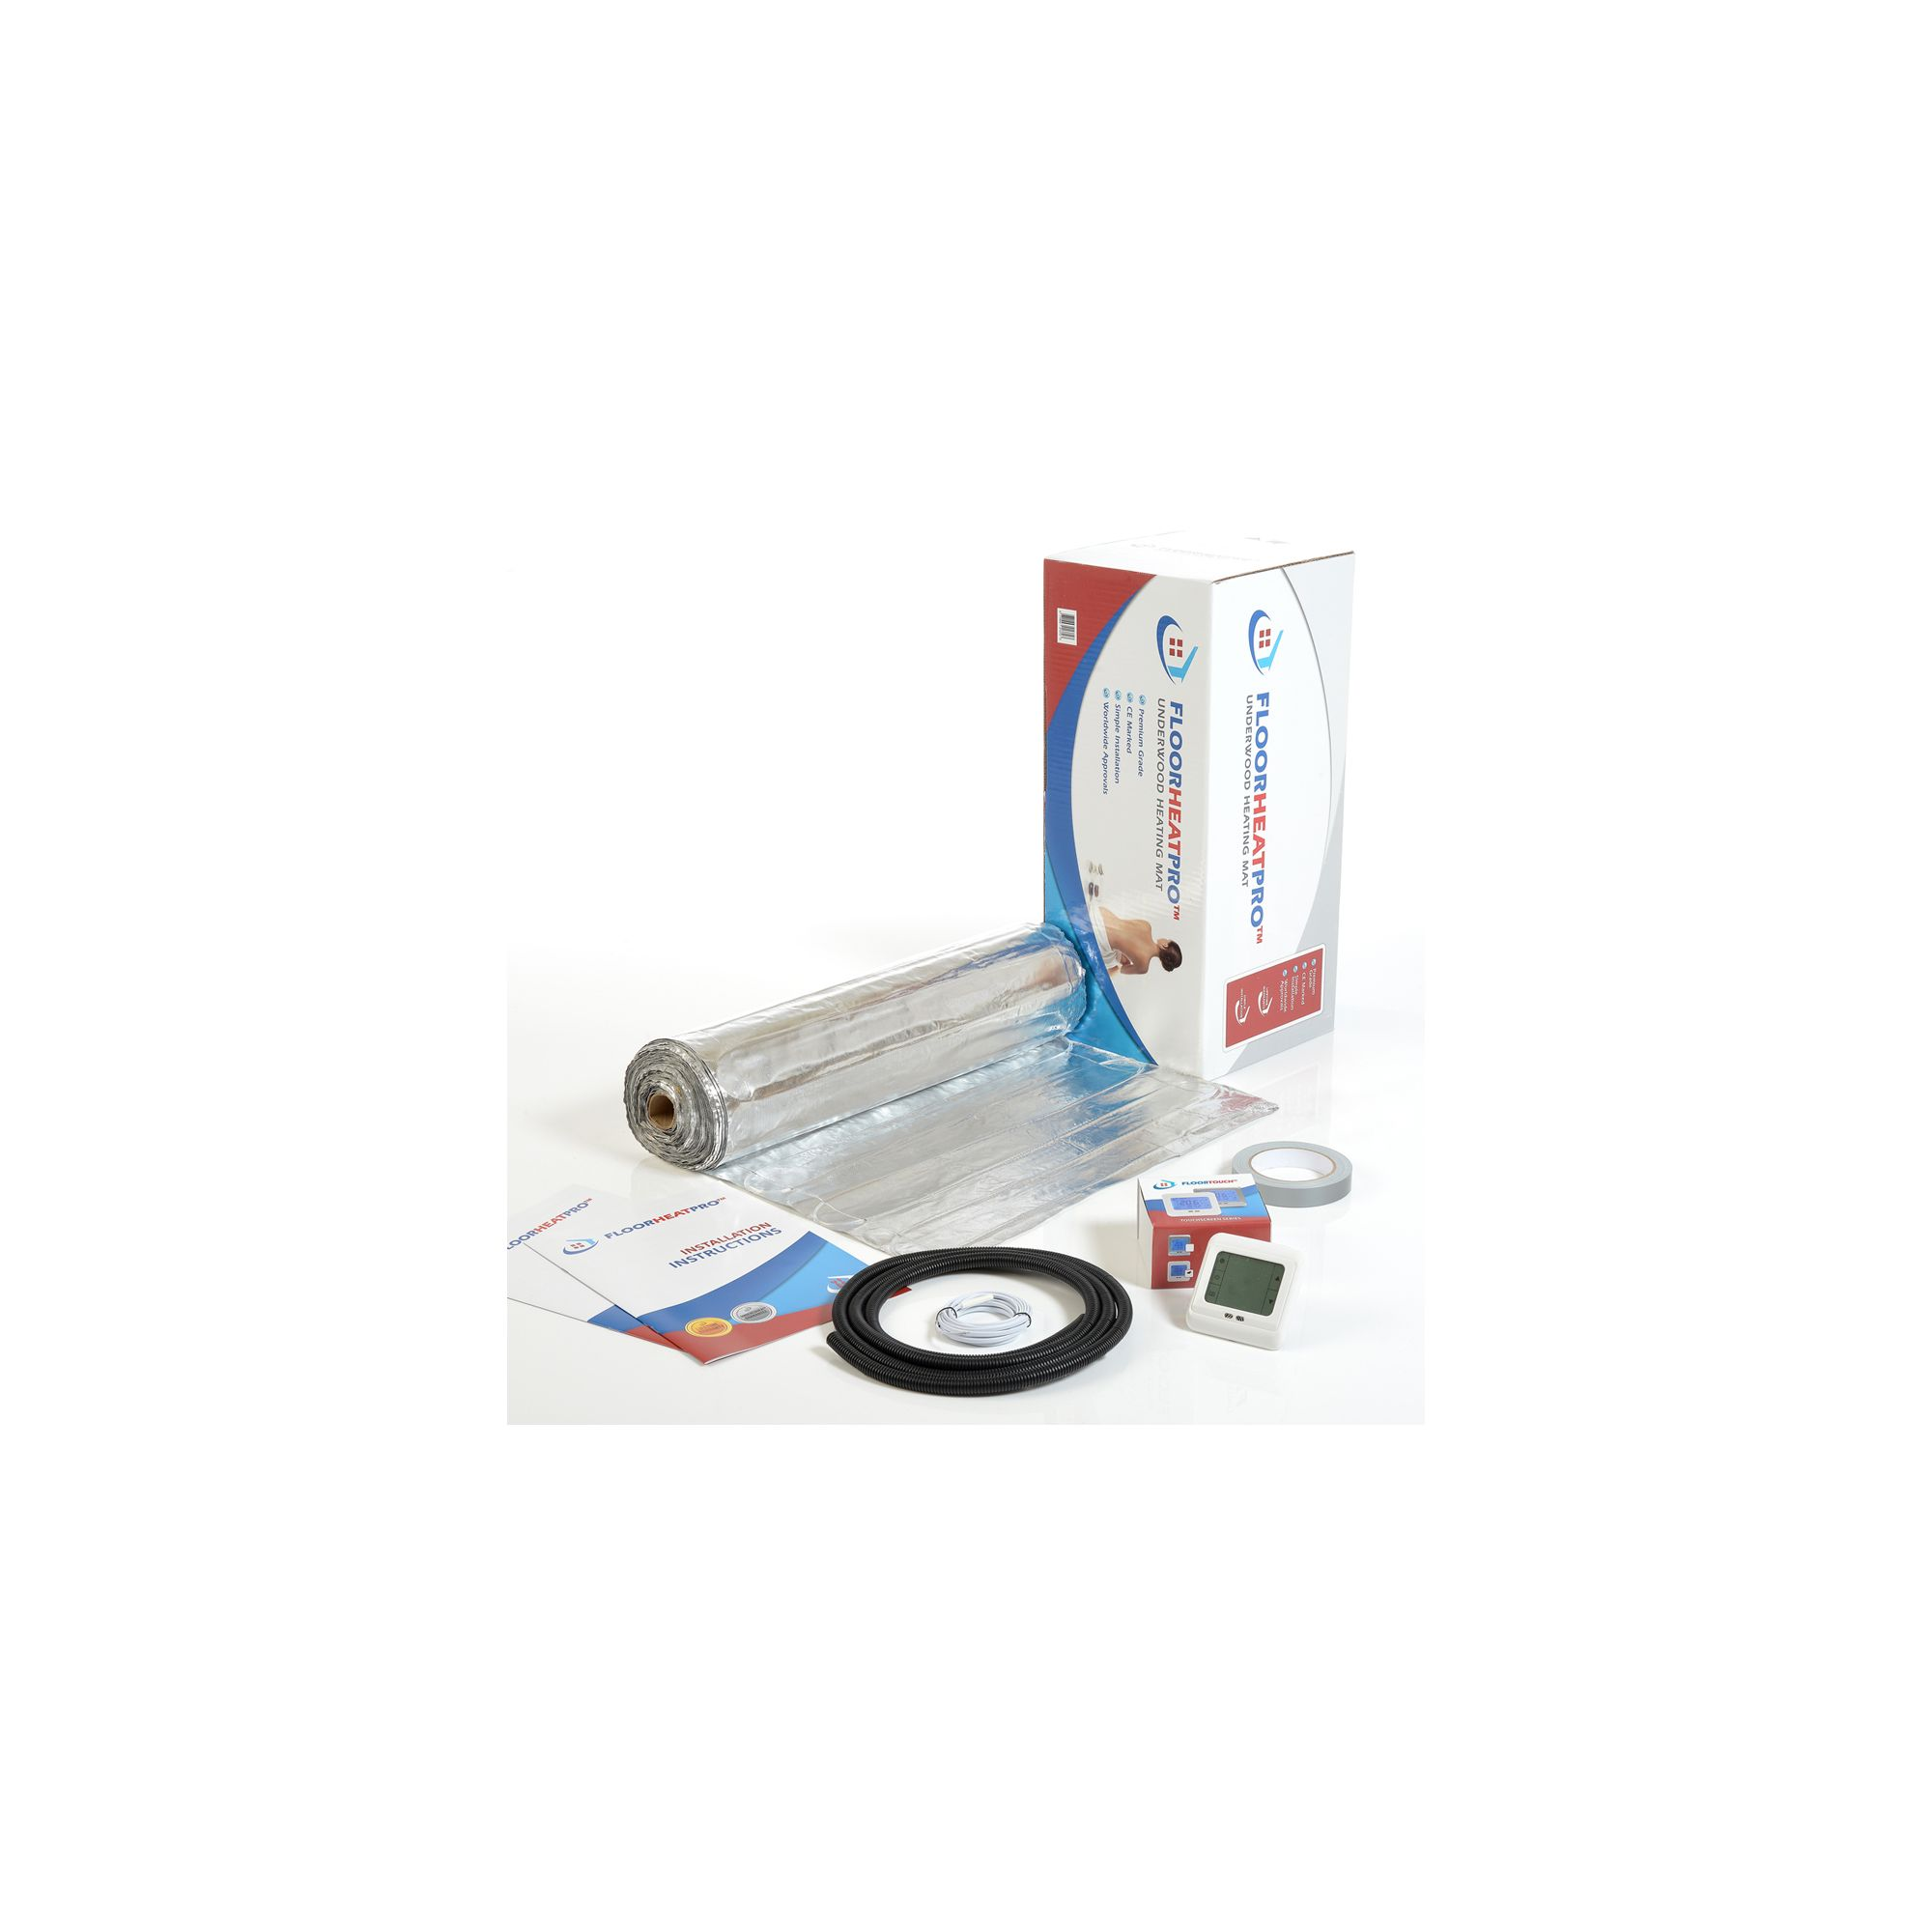 14.0 m2 - Underfloor Electric Heating Kit - Laminate at Tesco Direct